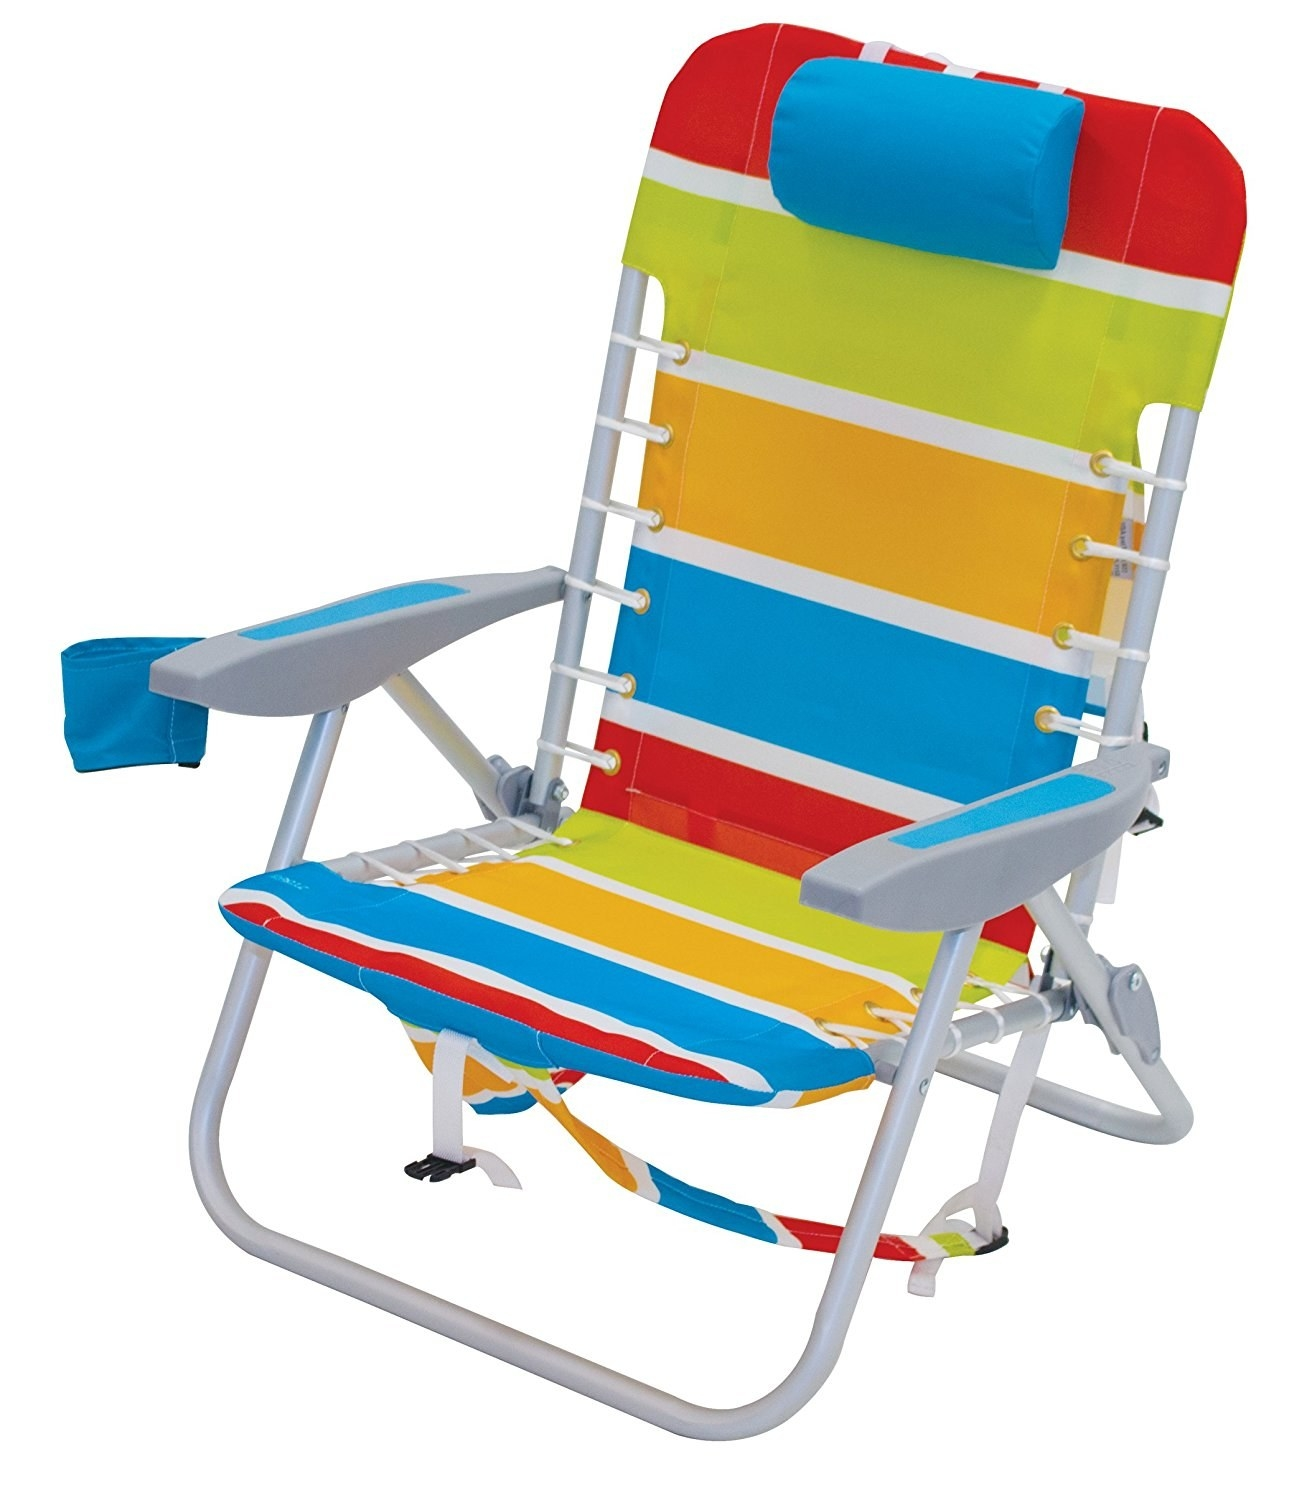 13 Of The Best Beach Chairs You Can Get On